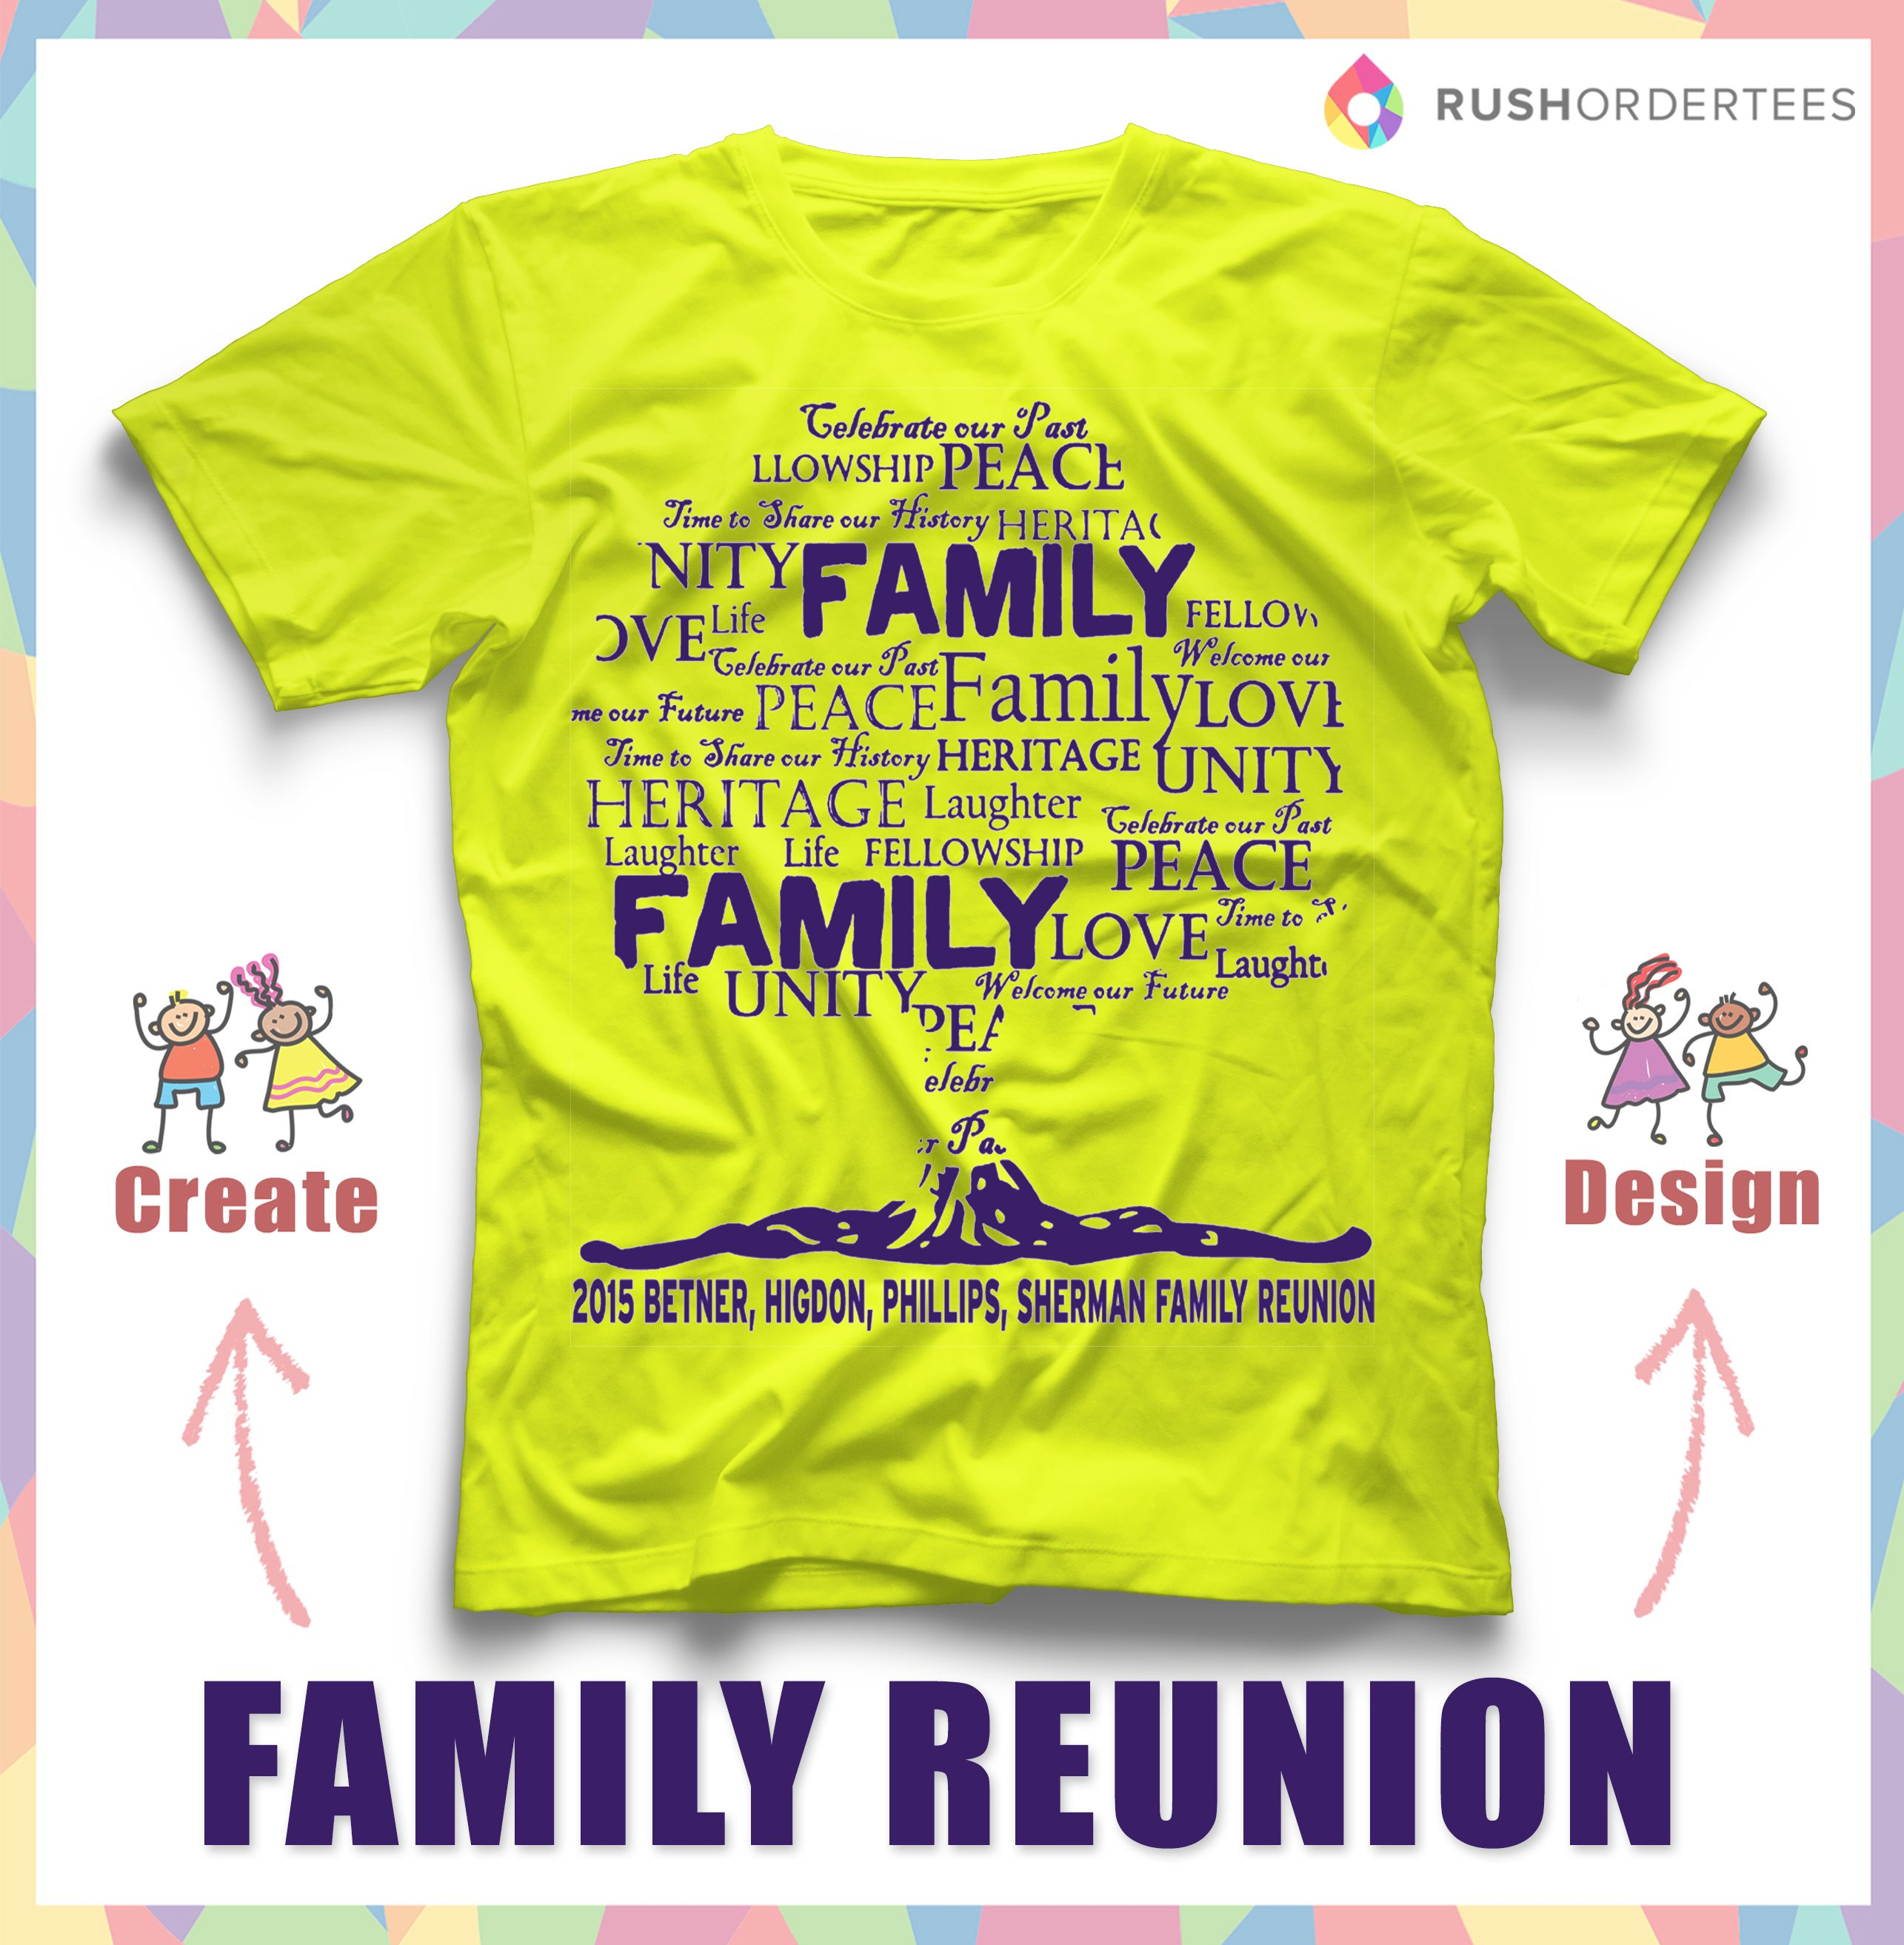 Family Reunion Shirt Design Ideas customizable family reunion shirt design Family Reunion T Shirt Ideas Create Your Custom Family Reunion T Shirt For